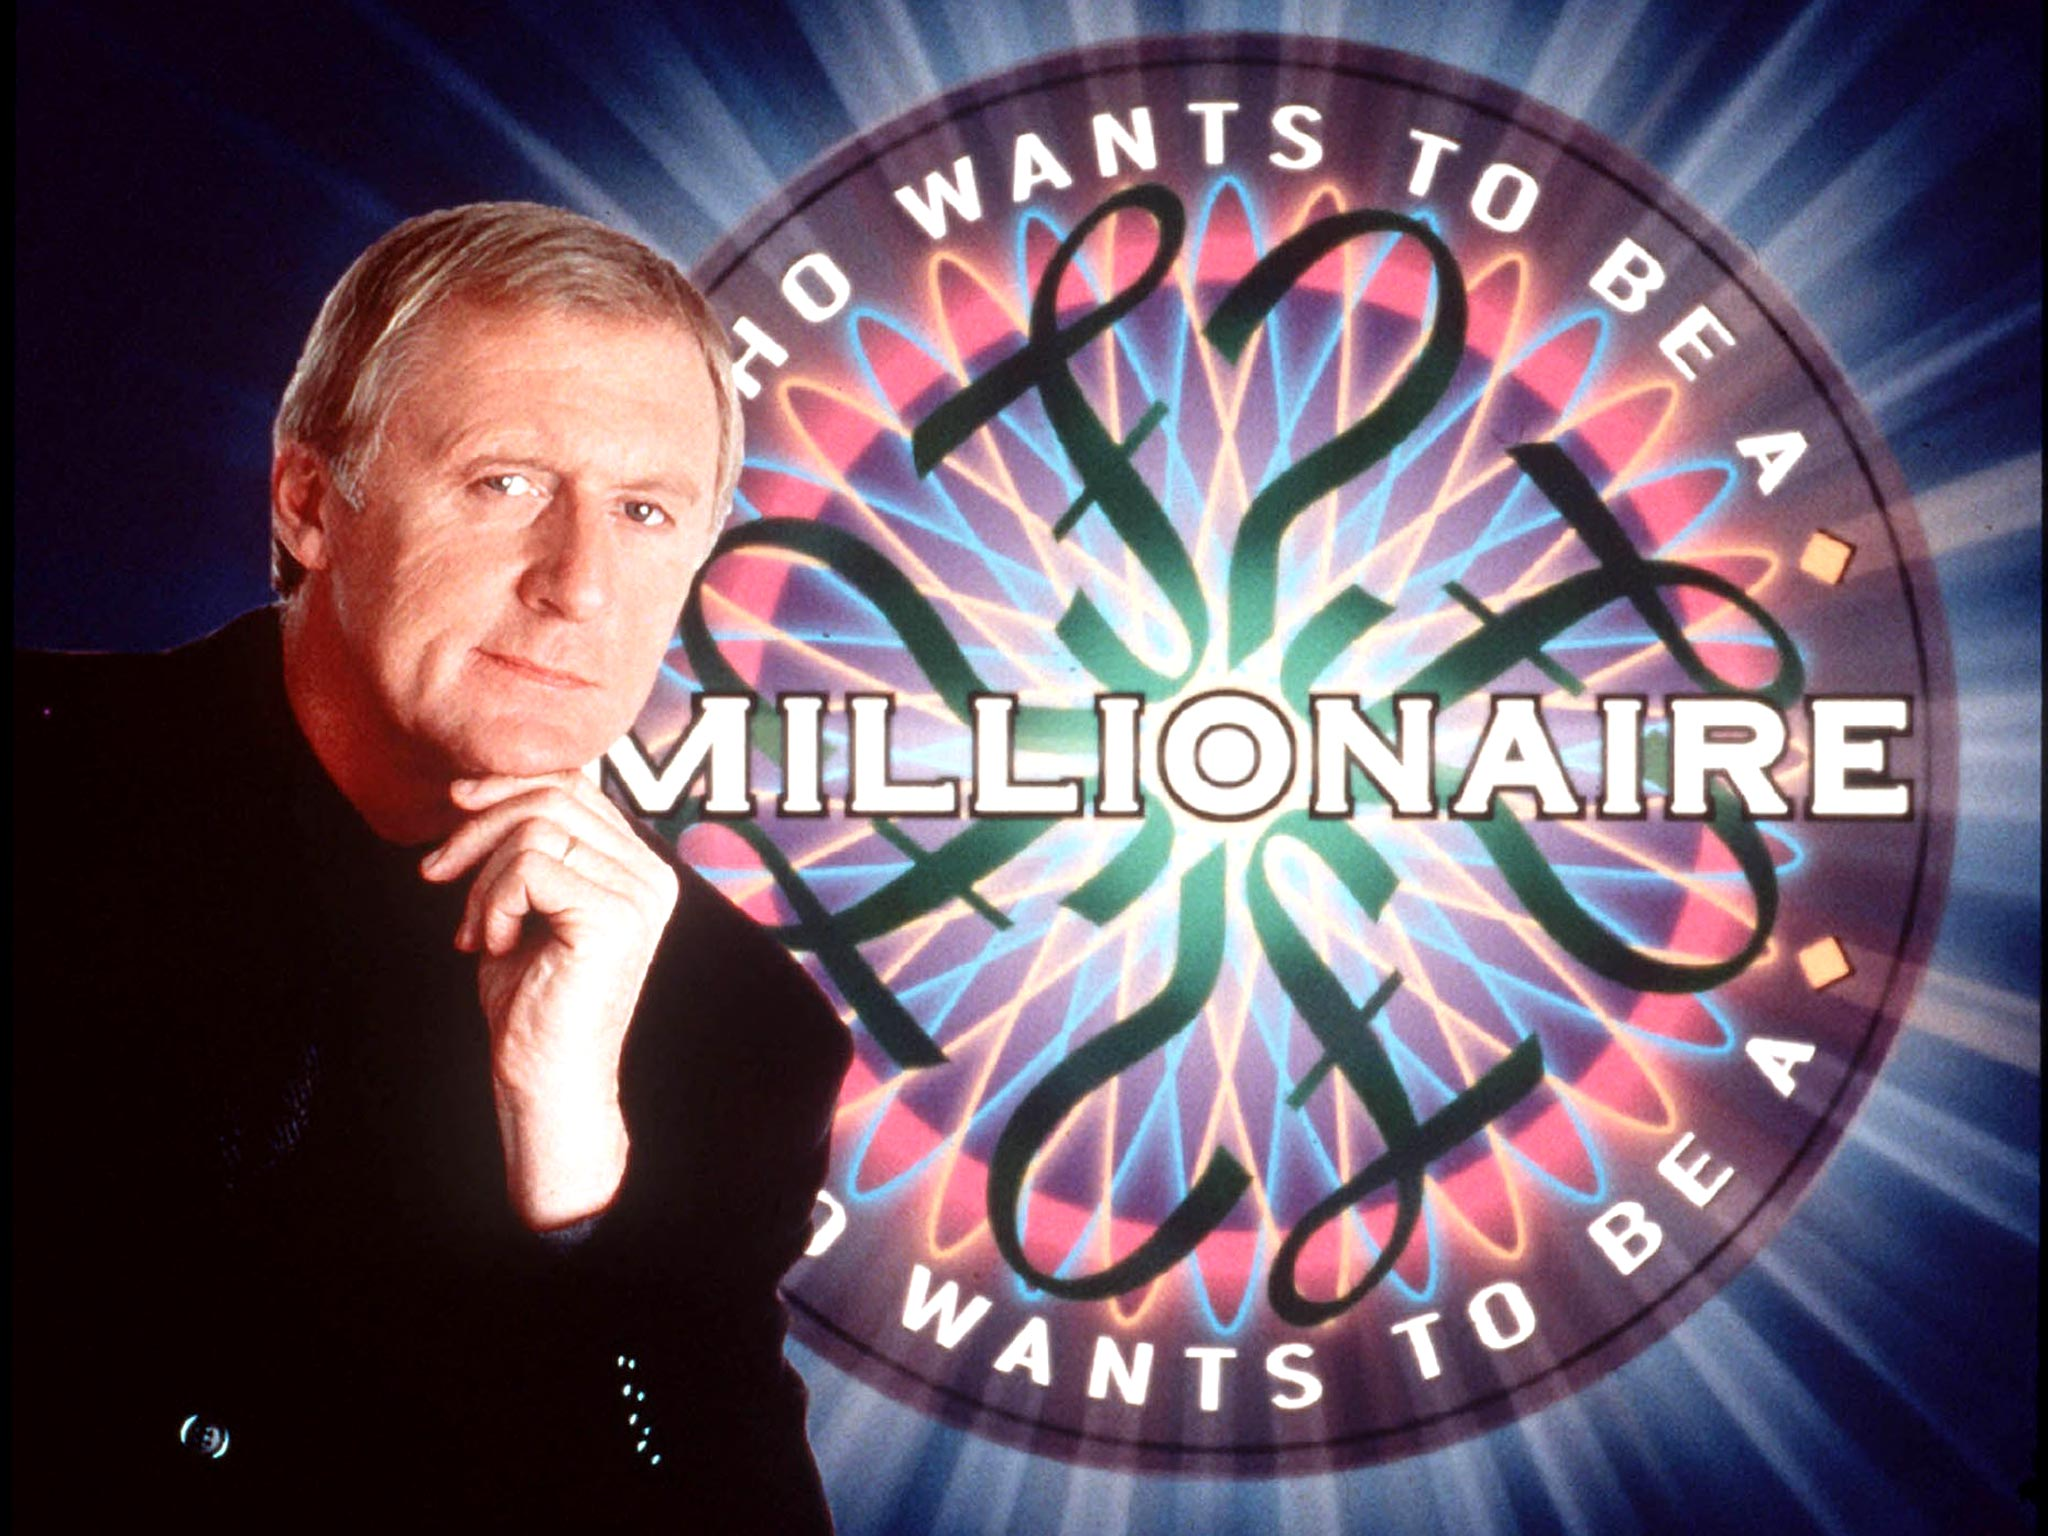 International versions of Who Wants to Be a Millionaire?